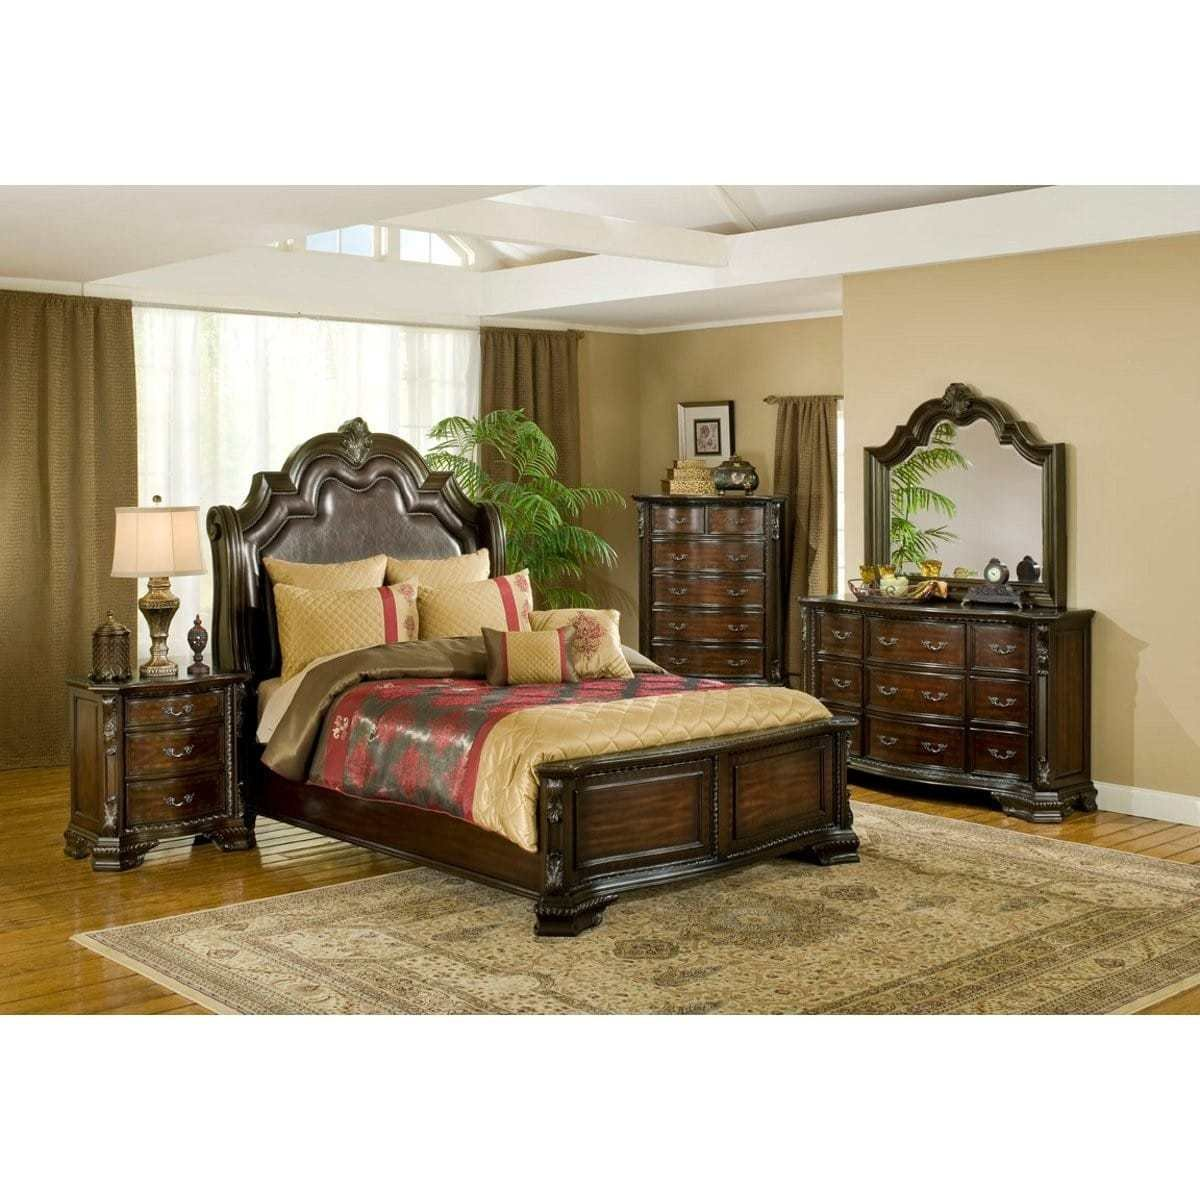 Best Alexandria Bedroom Bed Dresser Mirror King B1100 With Pictures